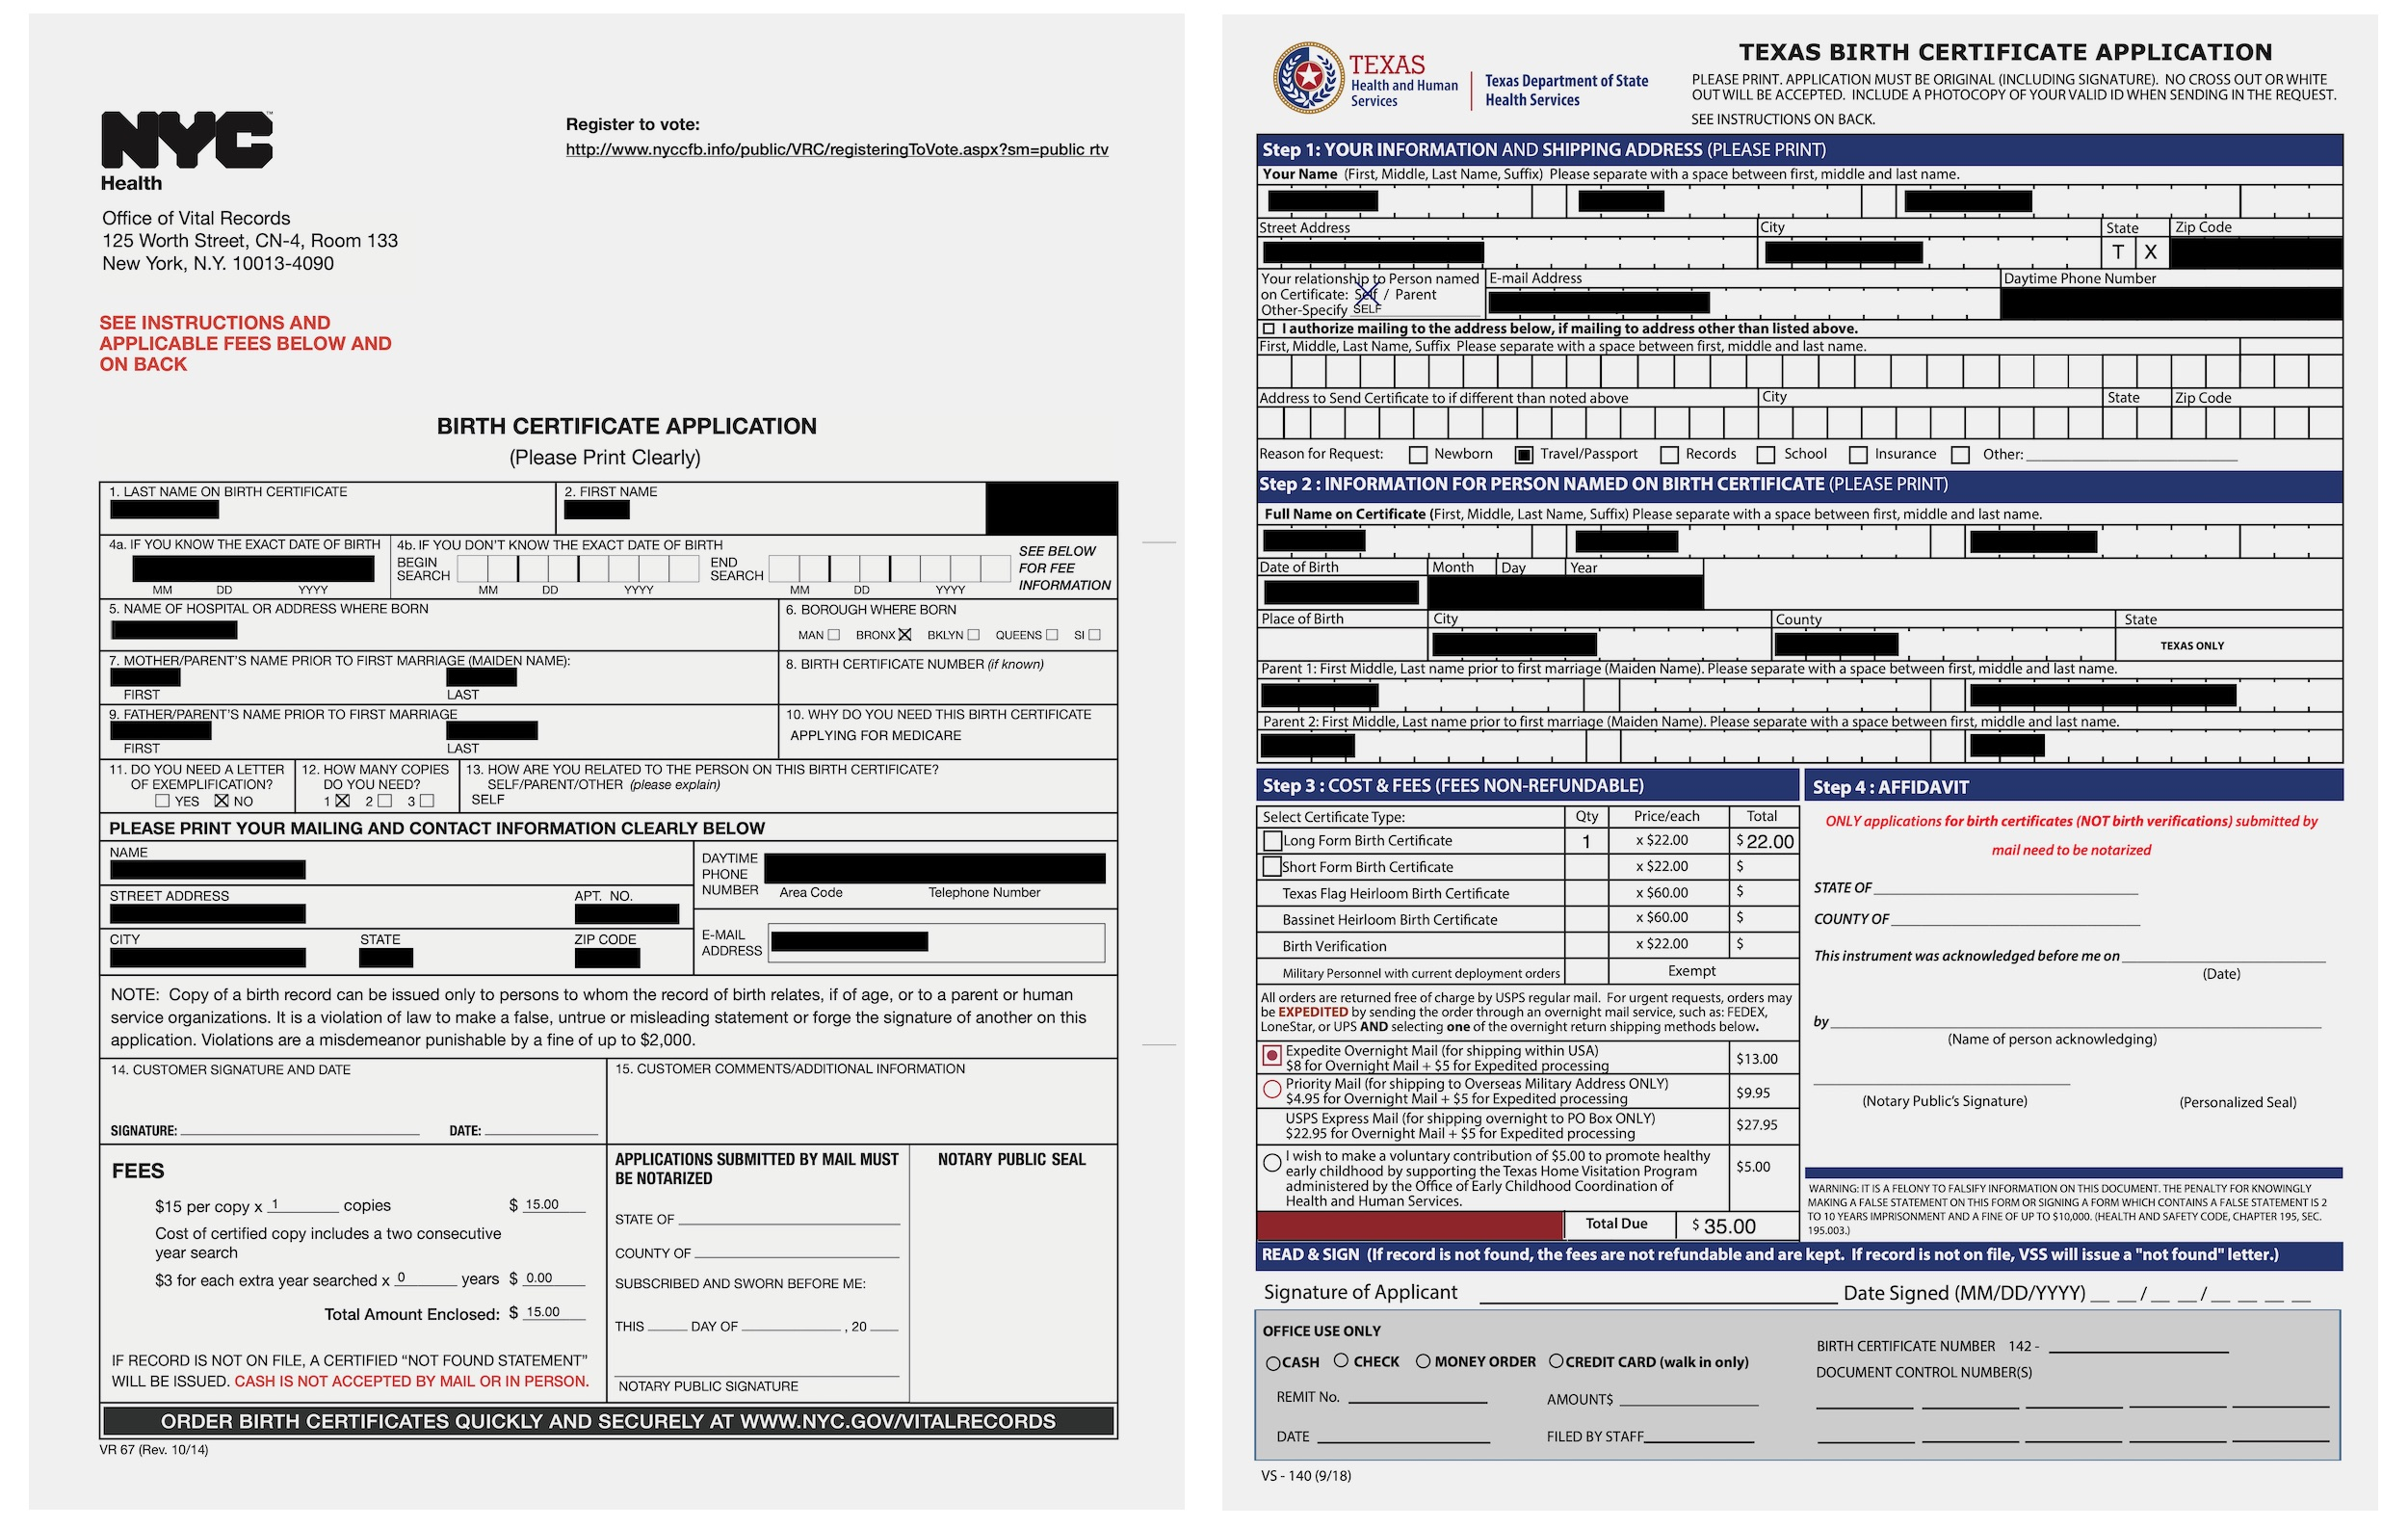 The applications for copies of birth certificates from many U.S. states — including California, New York, and Texas — were left online. (Image: TechCrunch)